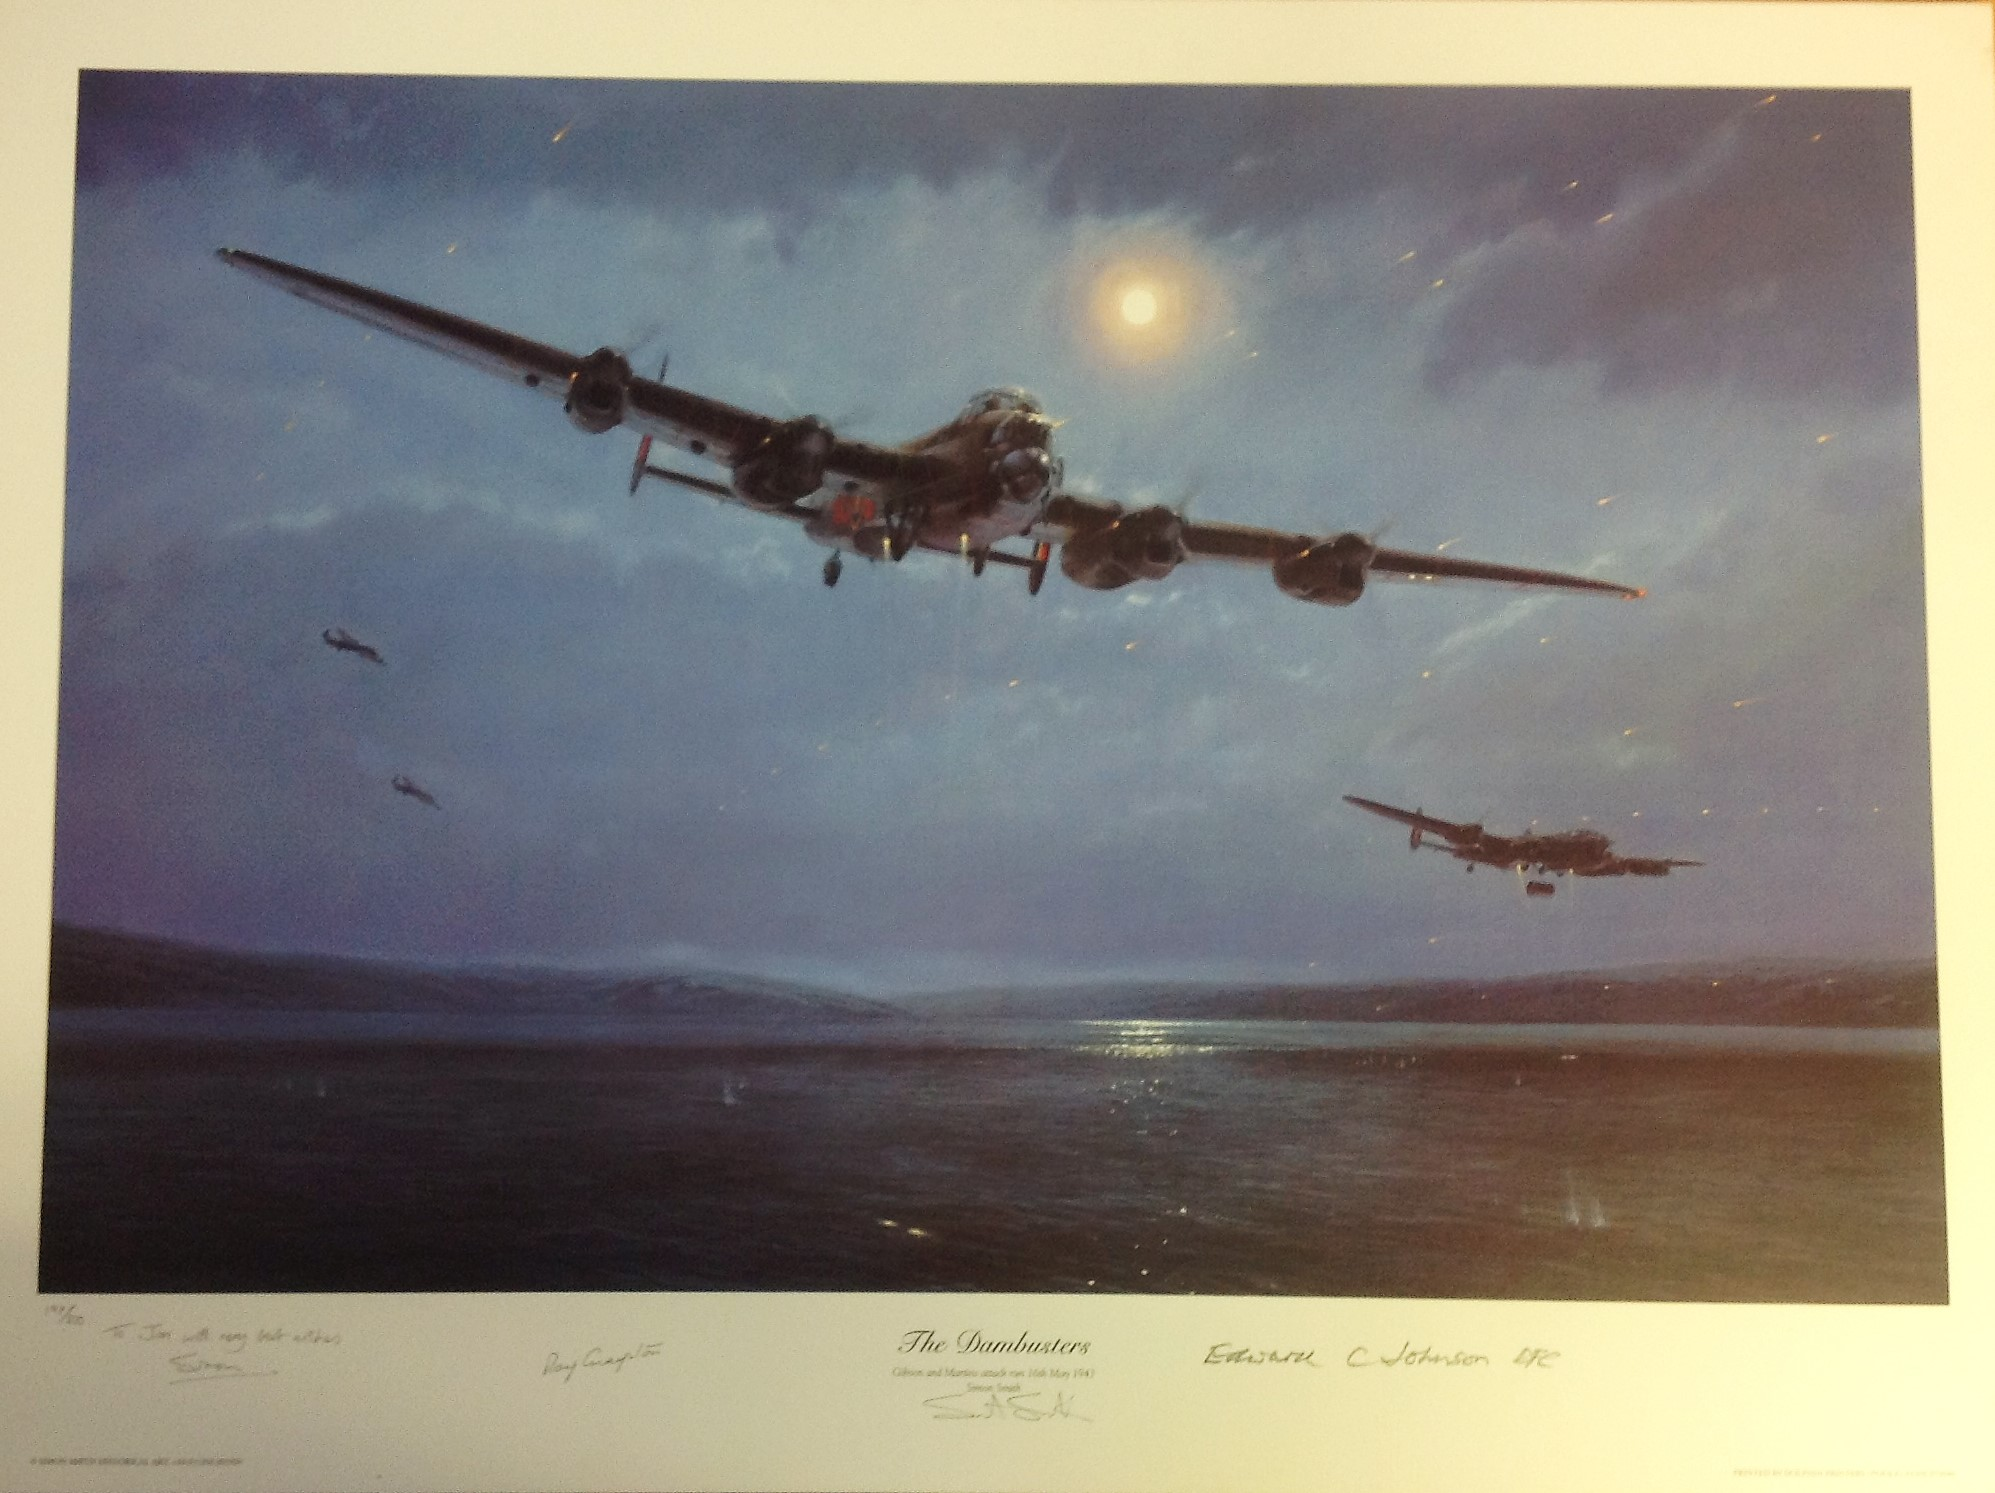 Lot 48 - Dambusters World War Two Print 21x27 titled The Dambusters Gibson and Martins attack run 16th May